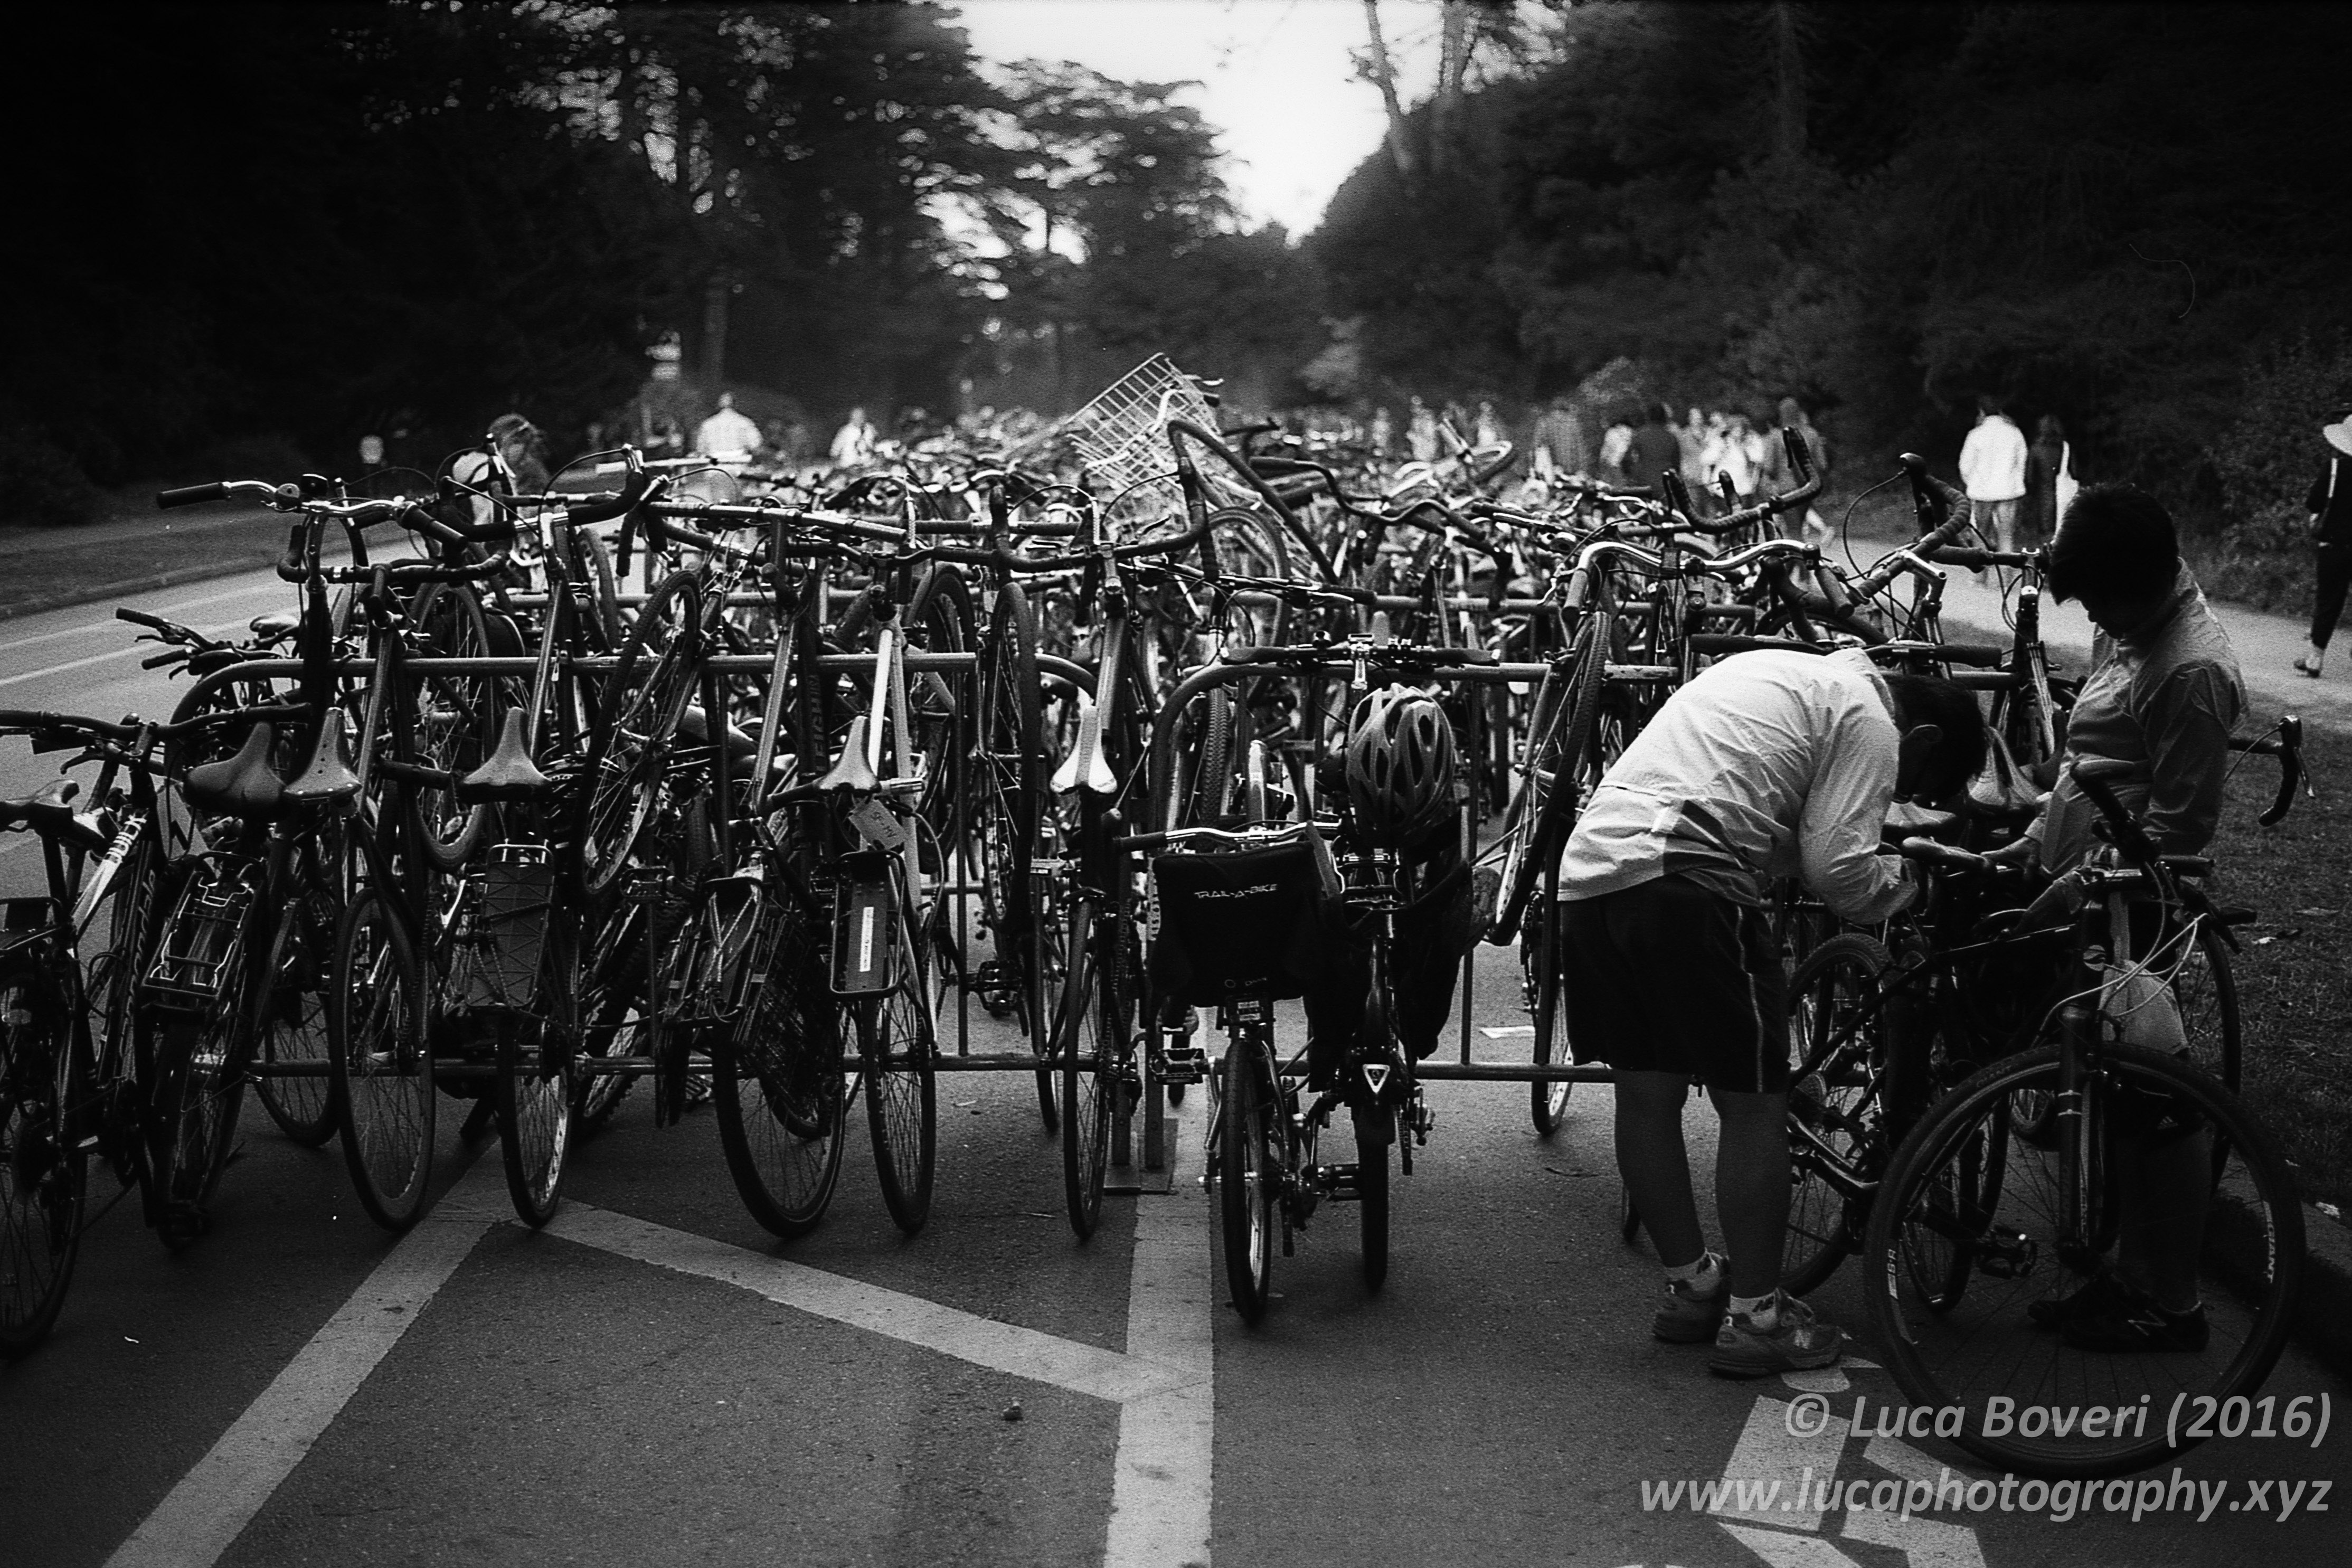 Bicycles in SF. @lucabove